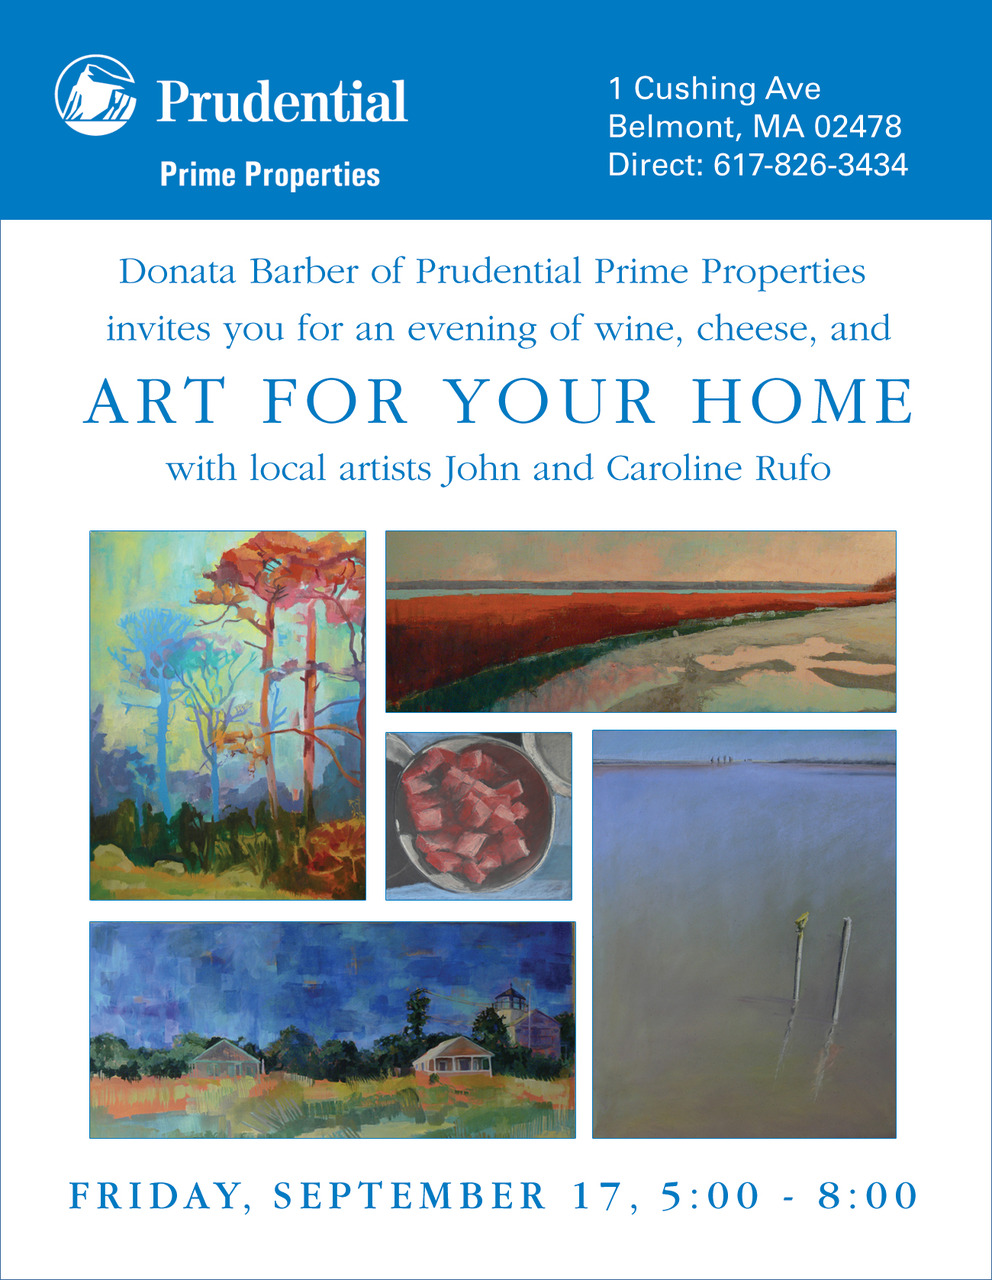 John and I are showing some of our work this Friday night in Belmont. Wine and cheese will be served. Please join us!